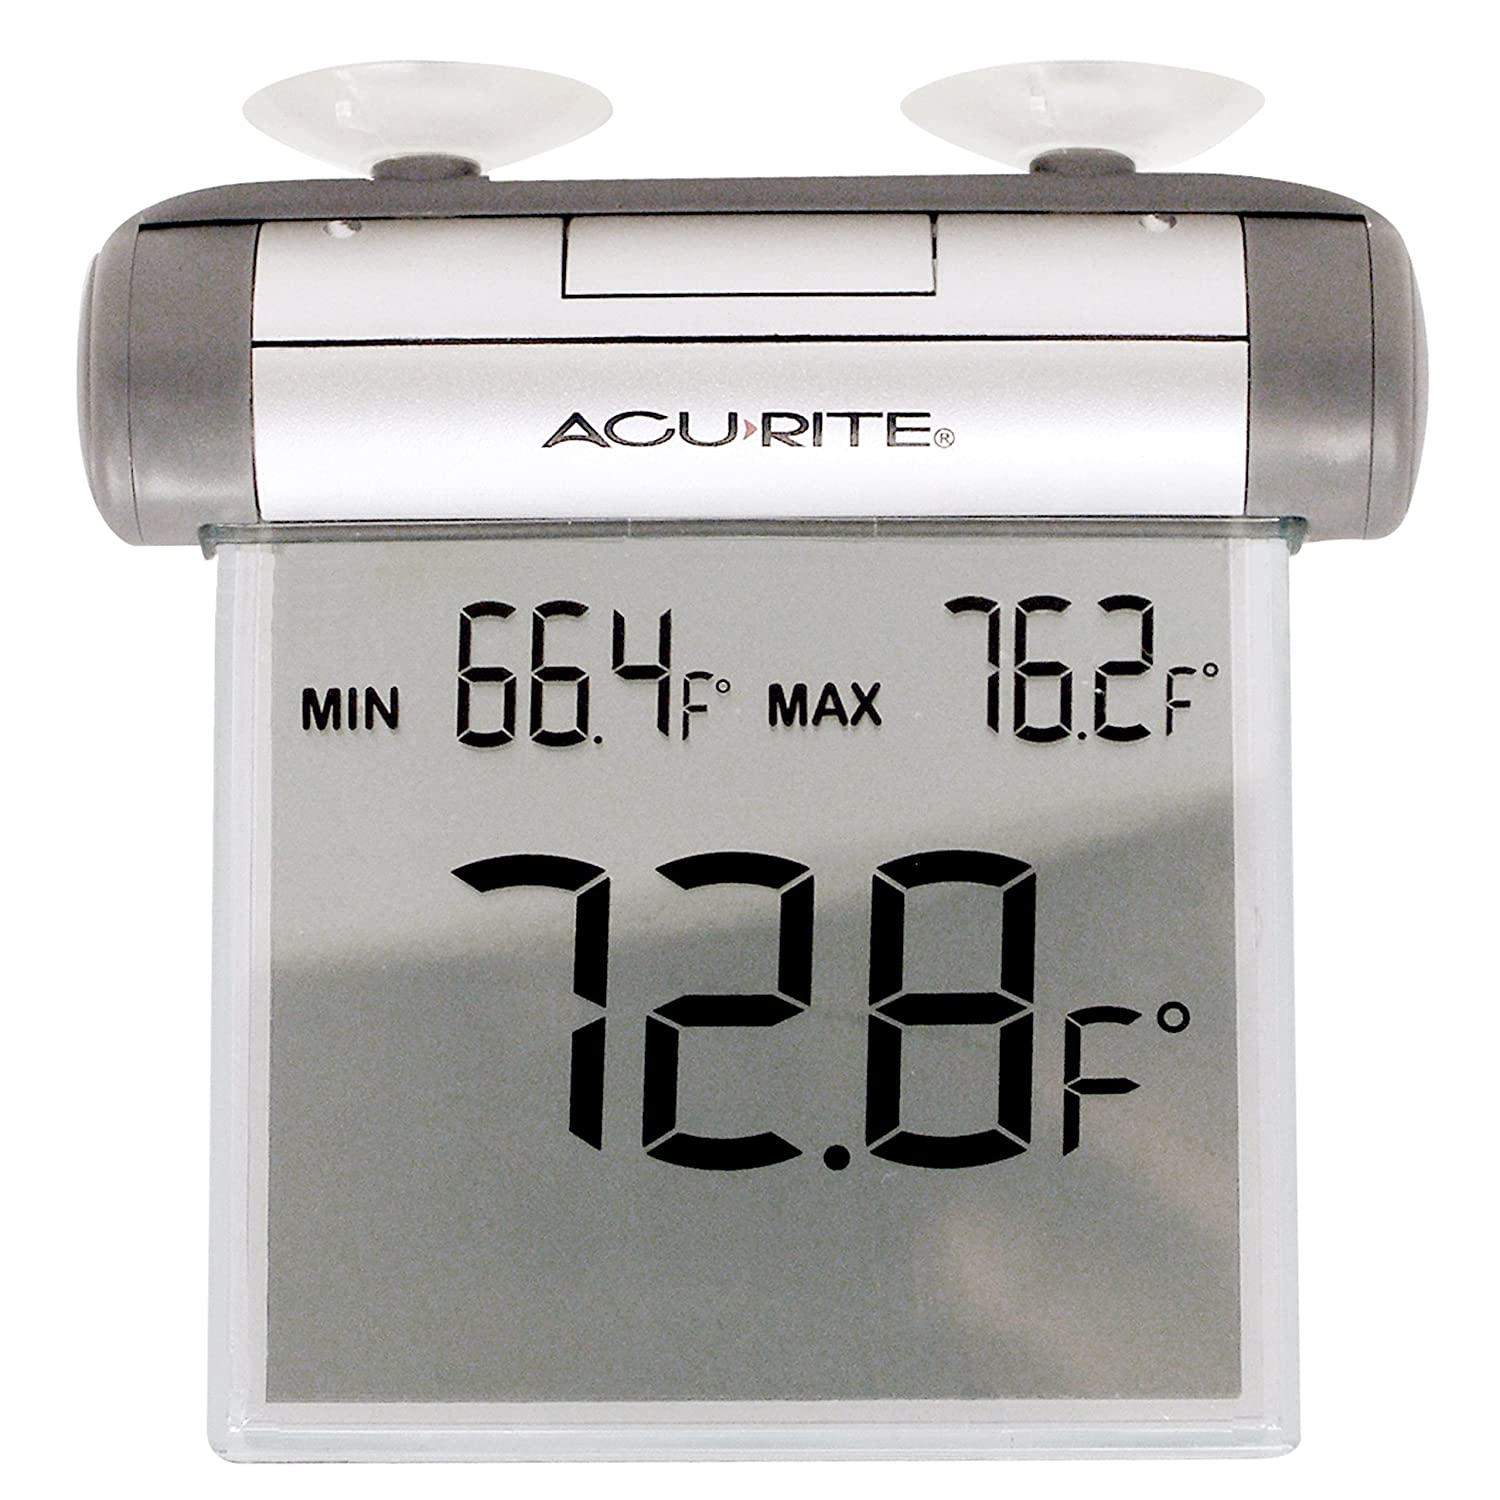 AcuRite 00603A1 Digital Window Thermometer 00603A3